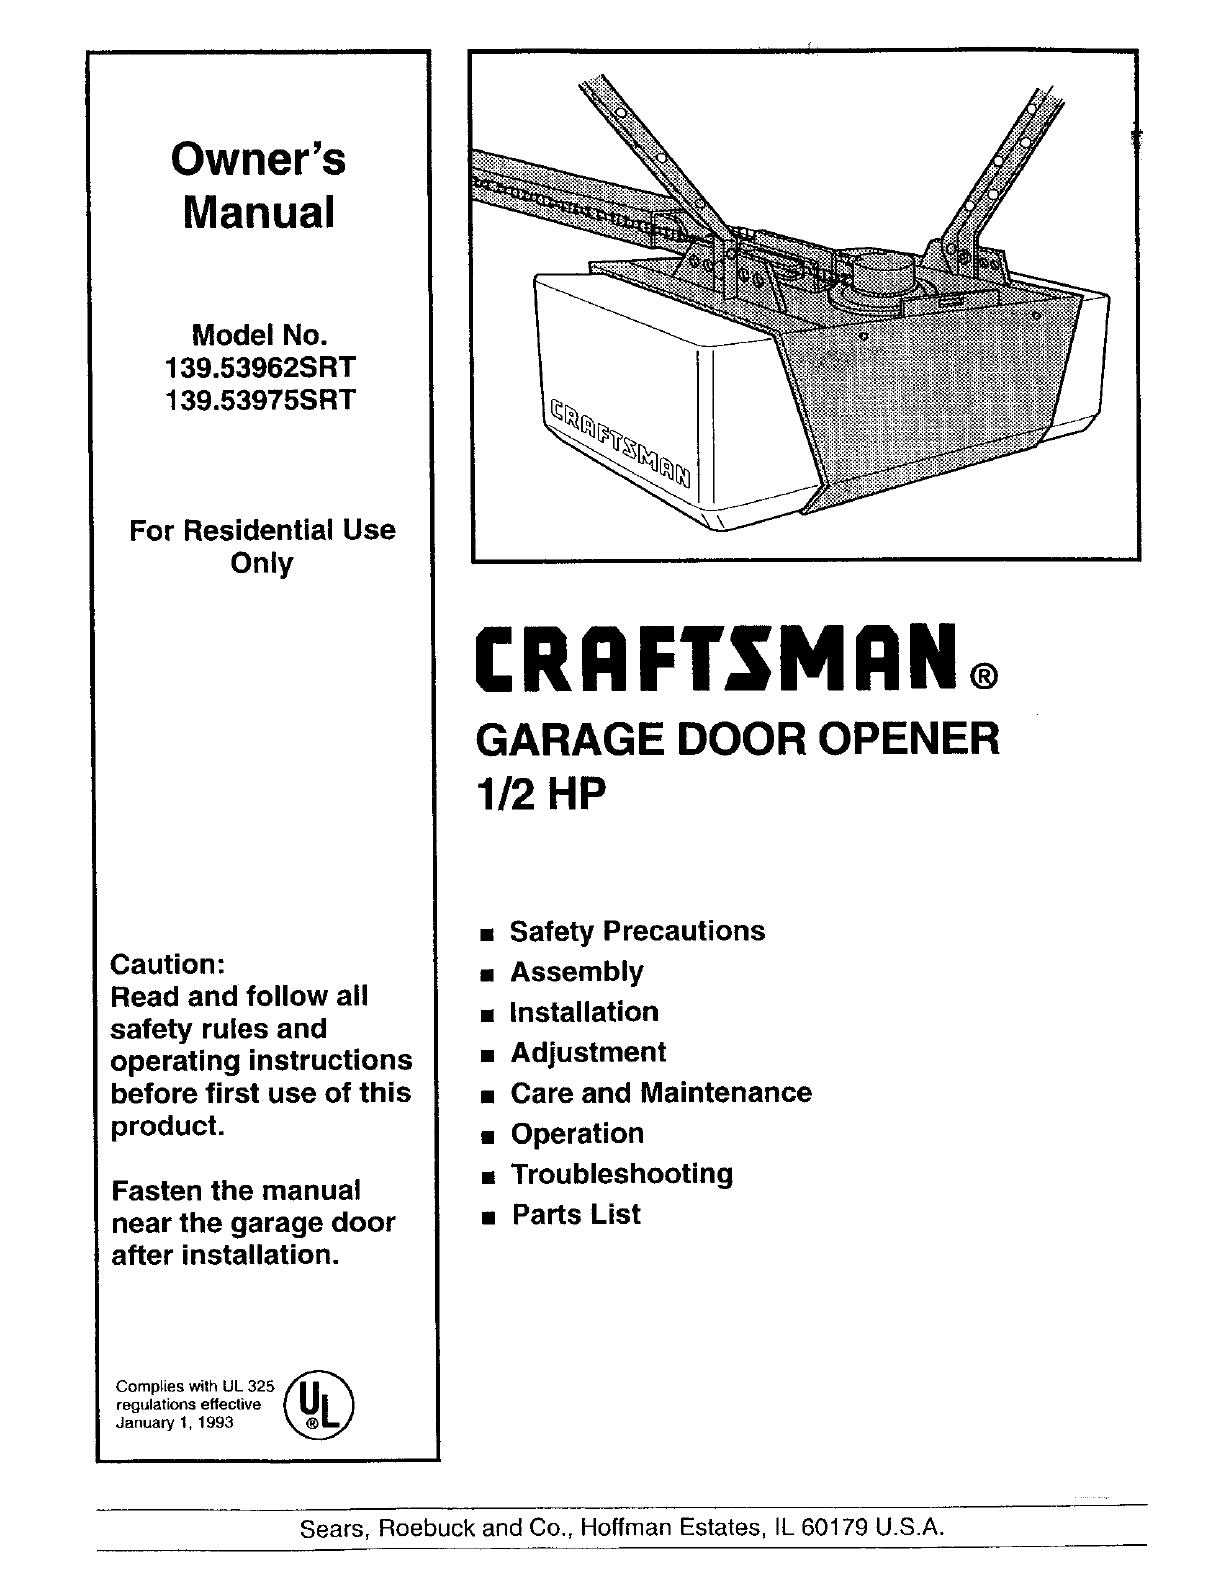 Craftsman Garage Door Opener 139.53962 SRT User Guide | ManualsOnline.comAppliance Manuals - ManualsOnline.com